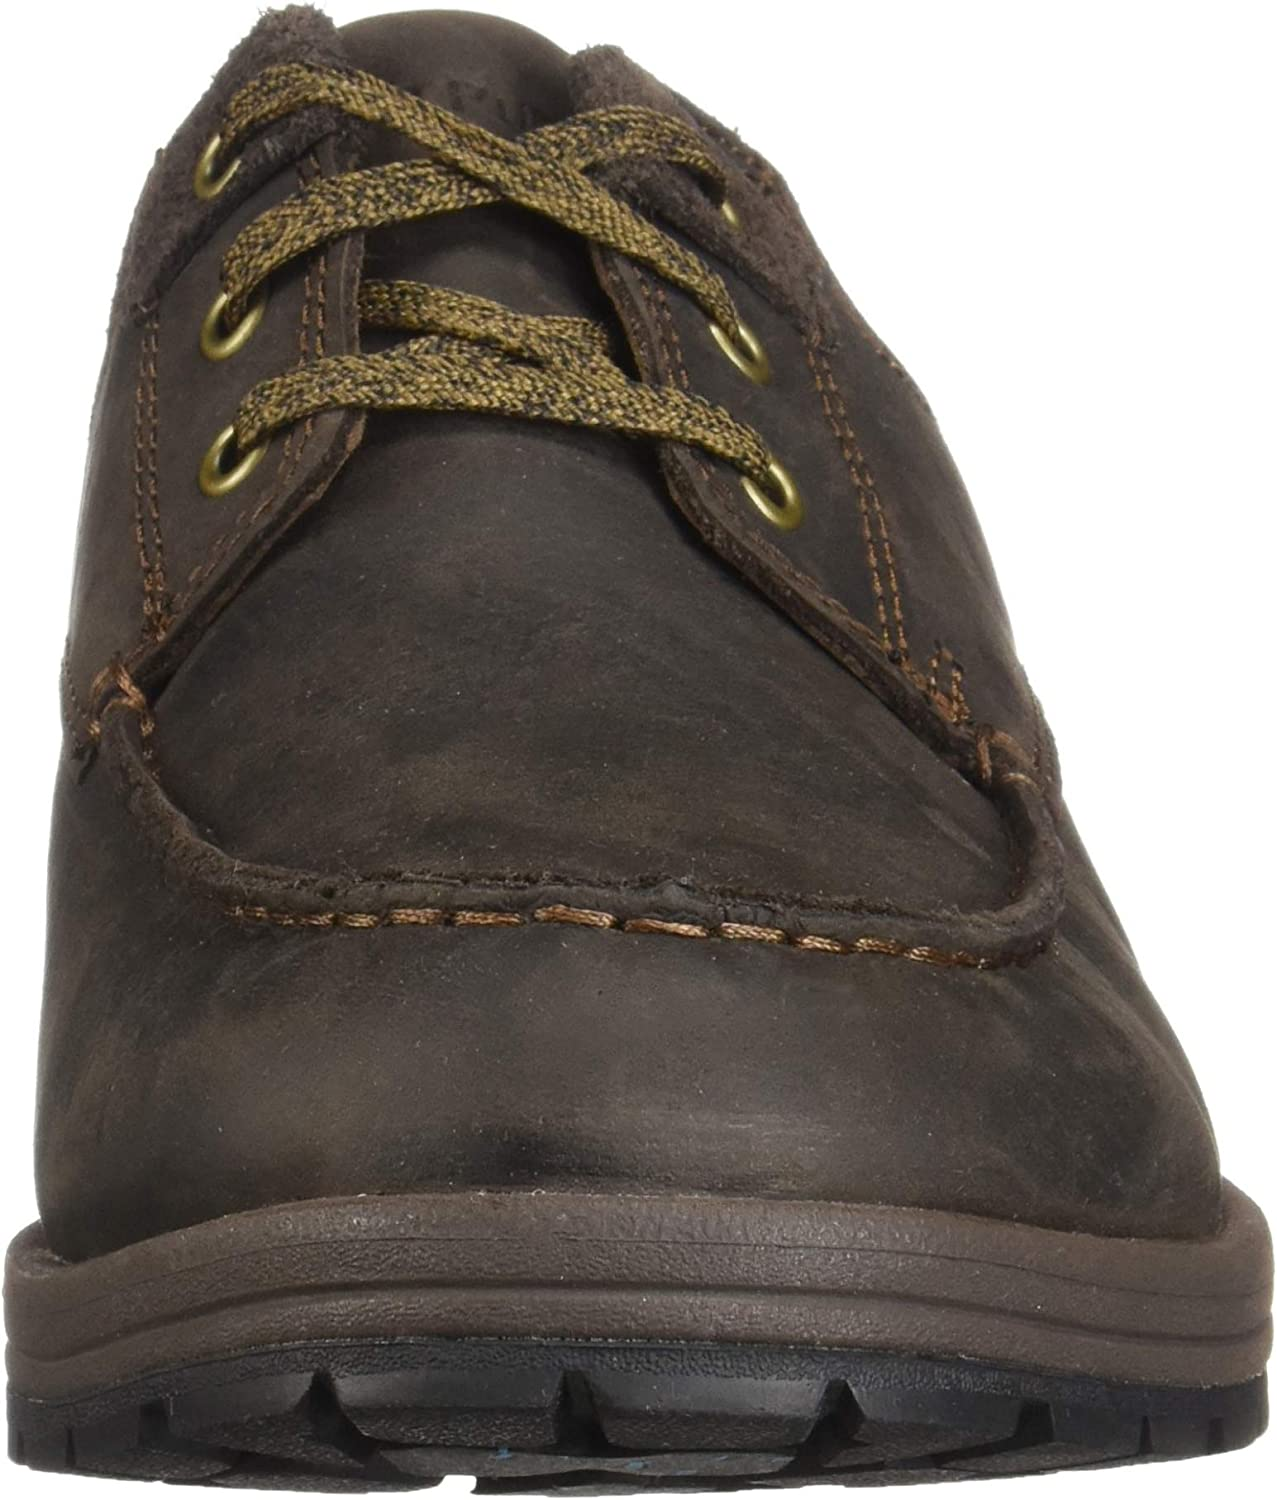 Hush Puppies BEAUCERON MT OXFORD Mens Comfy Stylish Lace Up Leather Shoes Brown